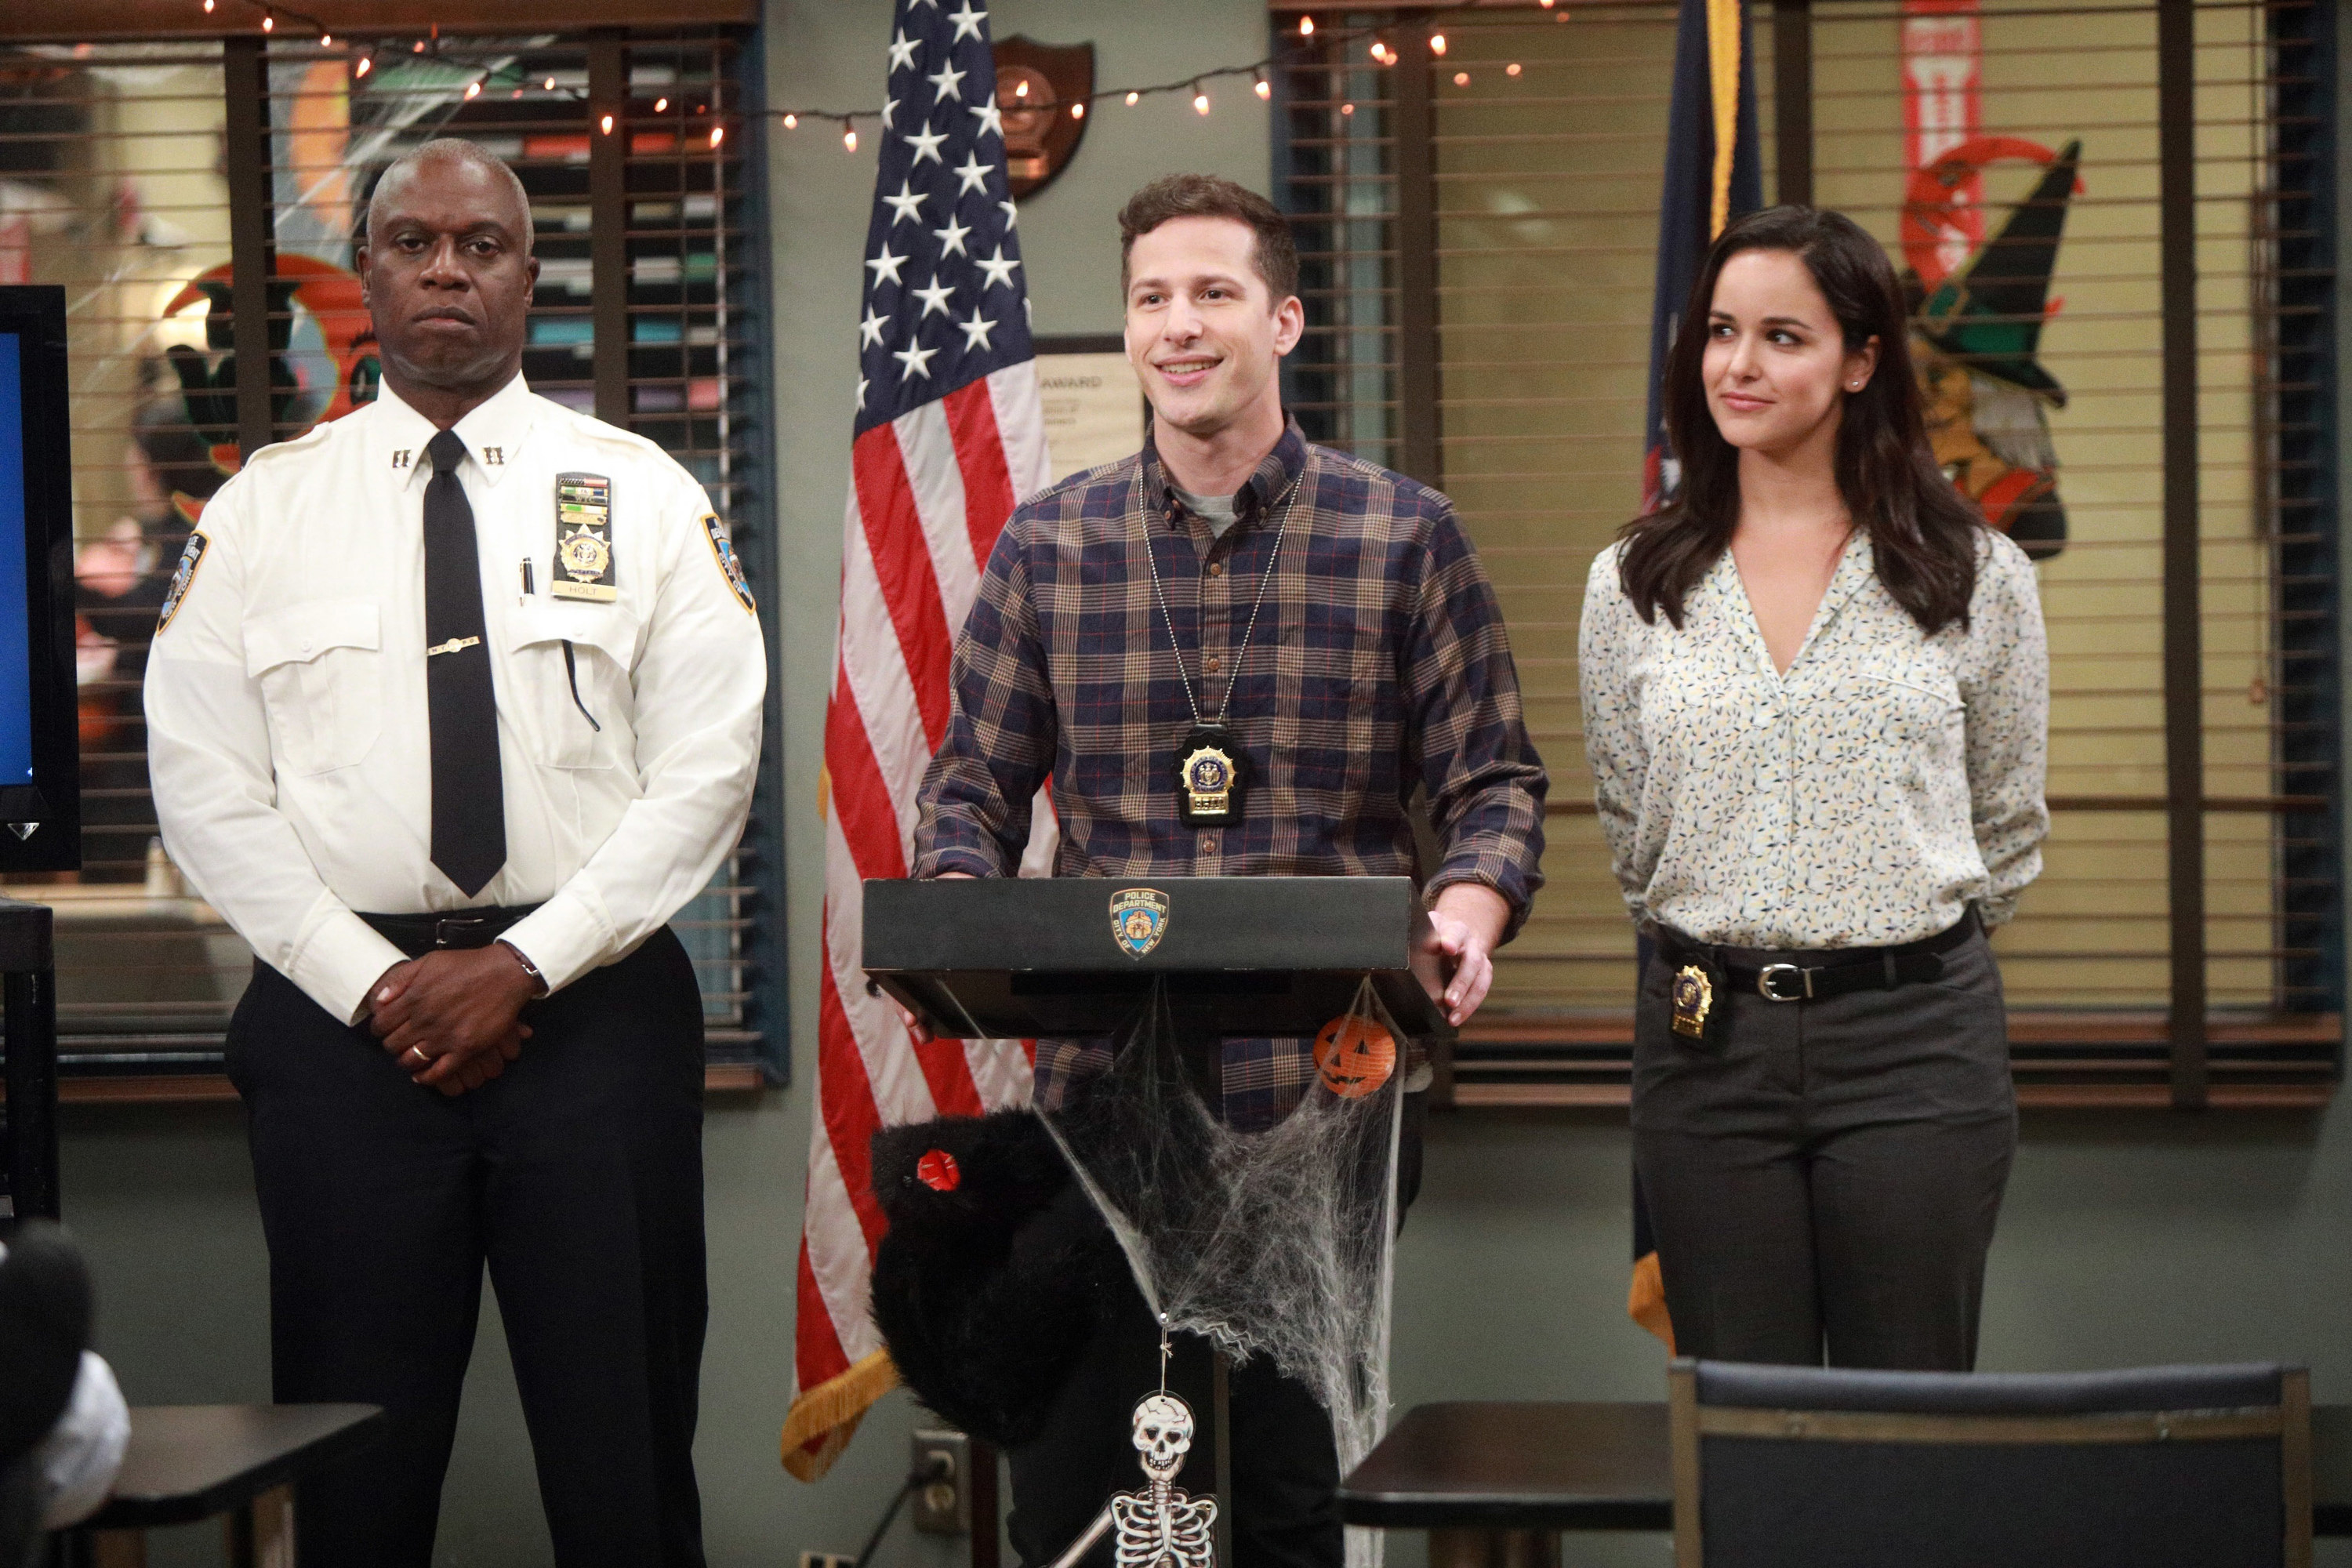 Andre Braugher, Andy Samberg, and Melissa Fumero deliver a speach at the front of the precinct